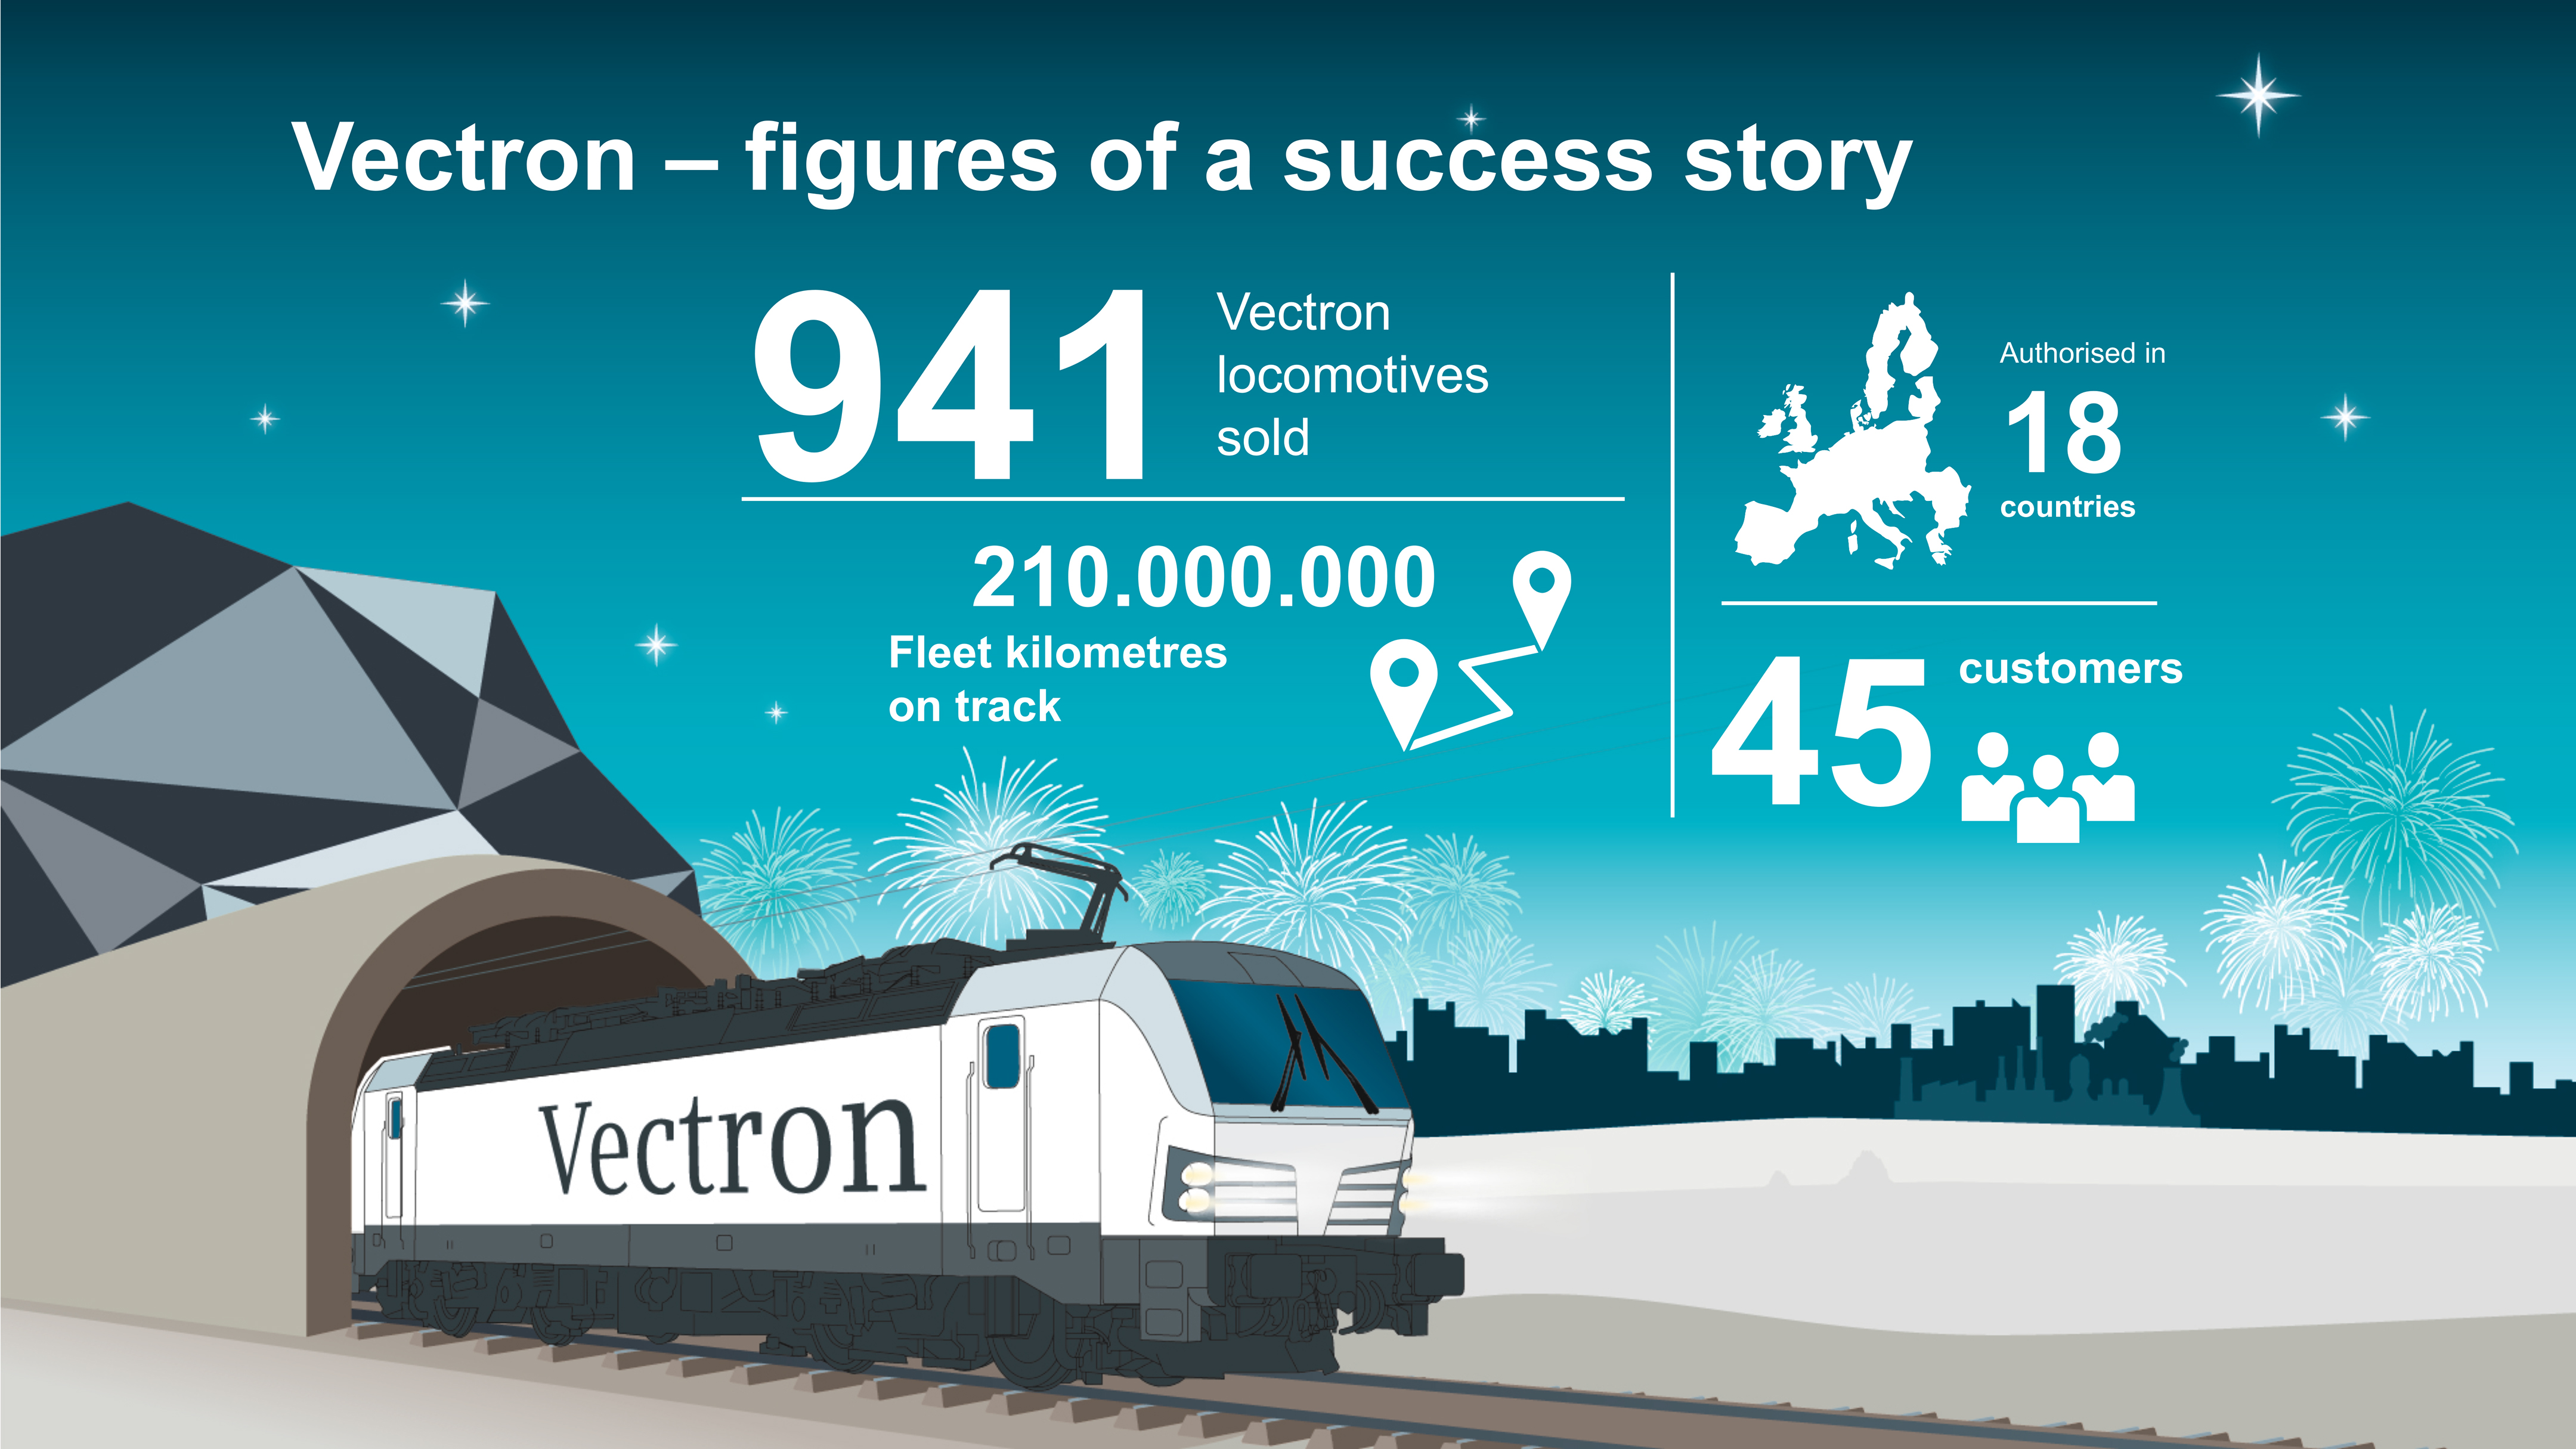 Vectron – the vehicle concept | Press | Company | Siemens